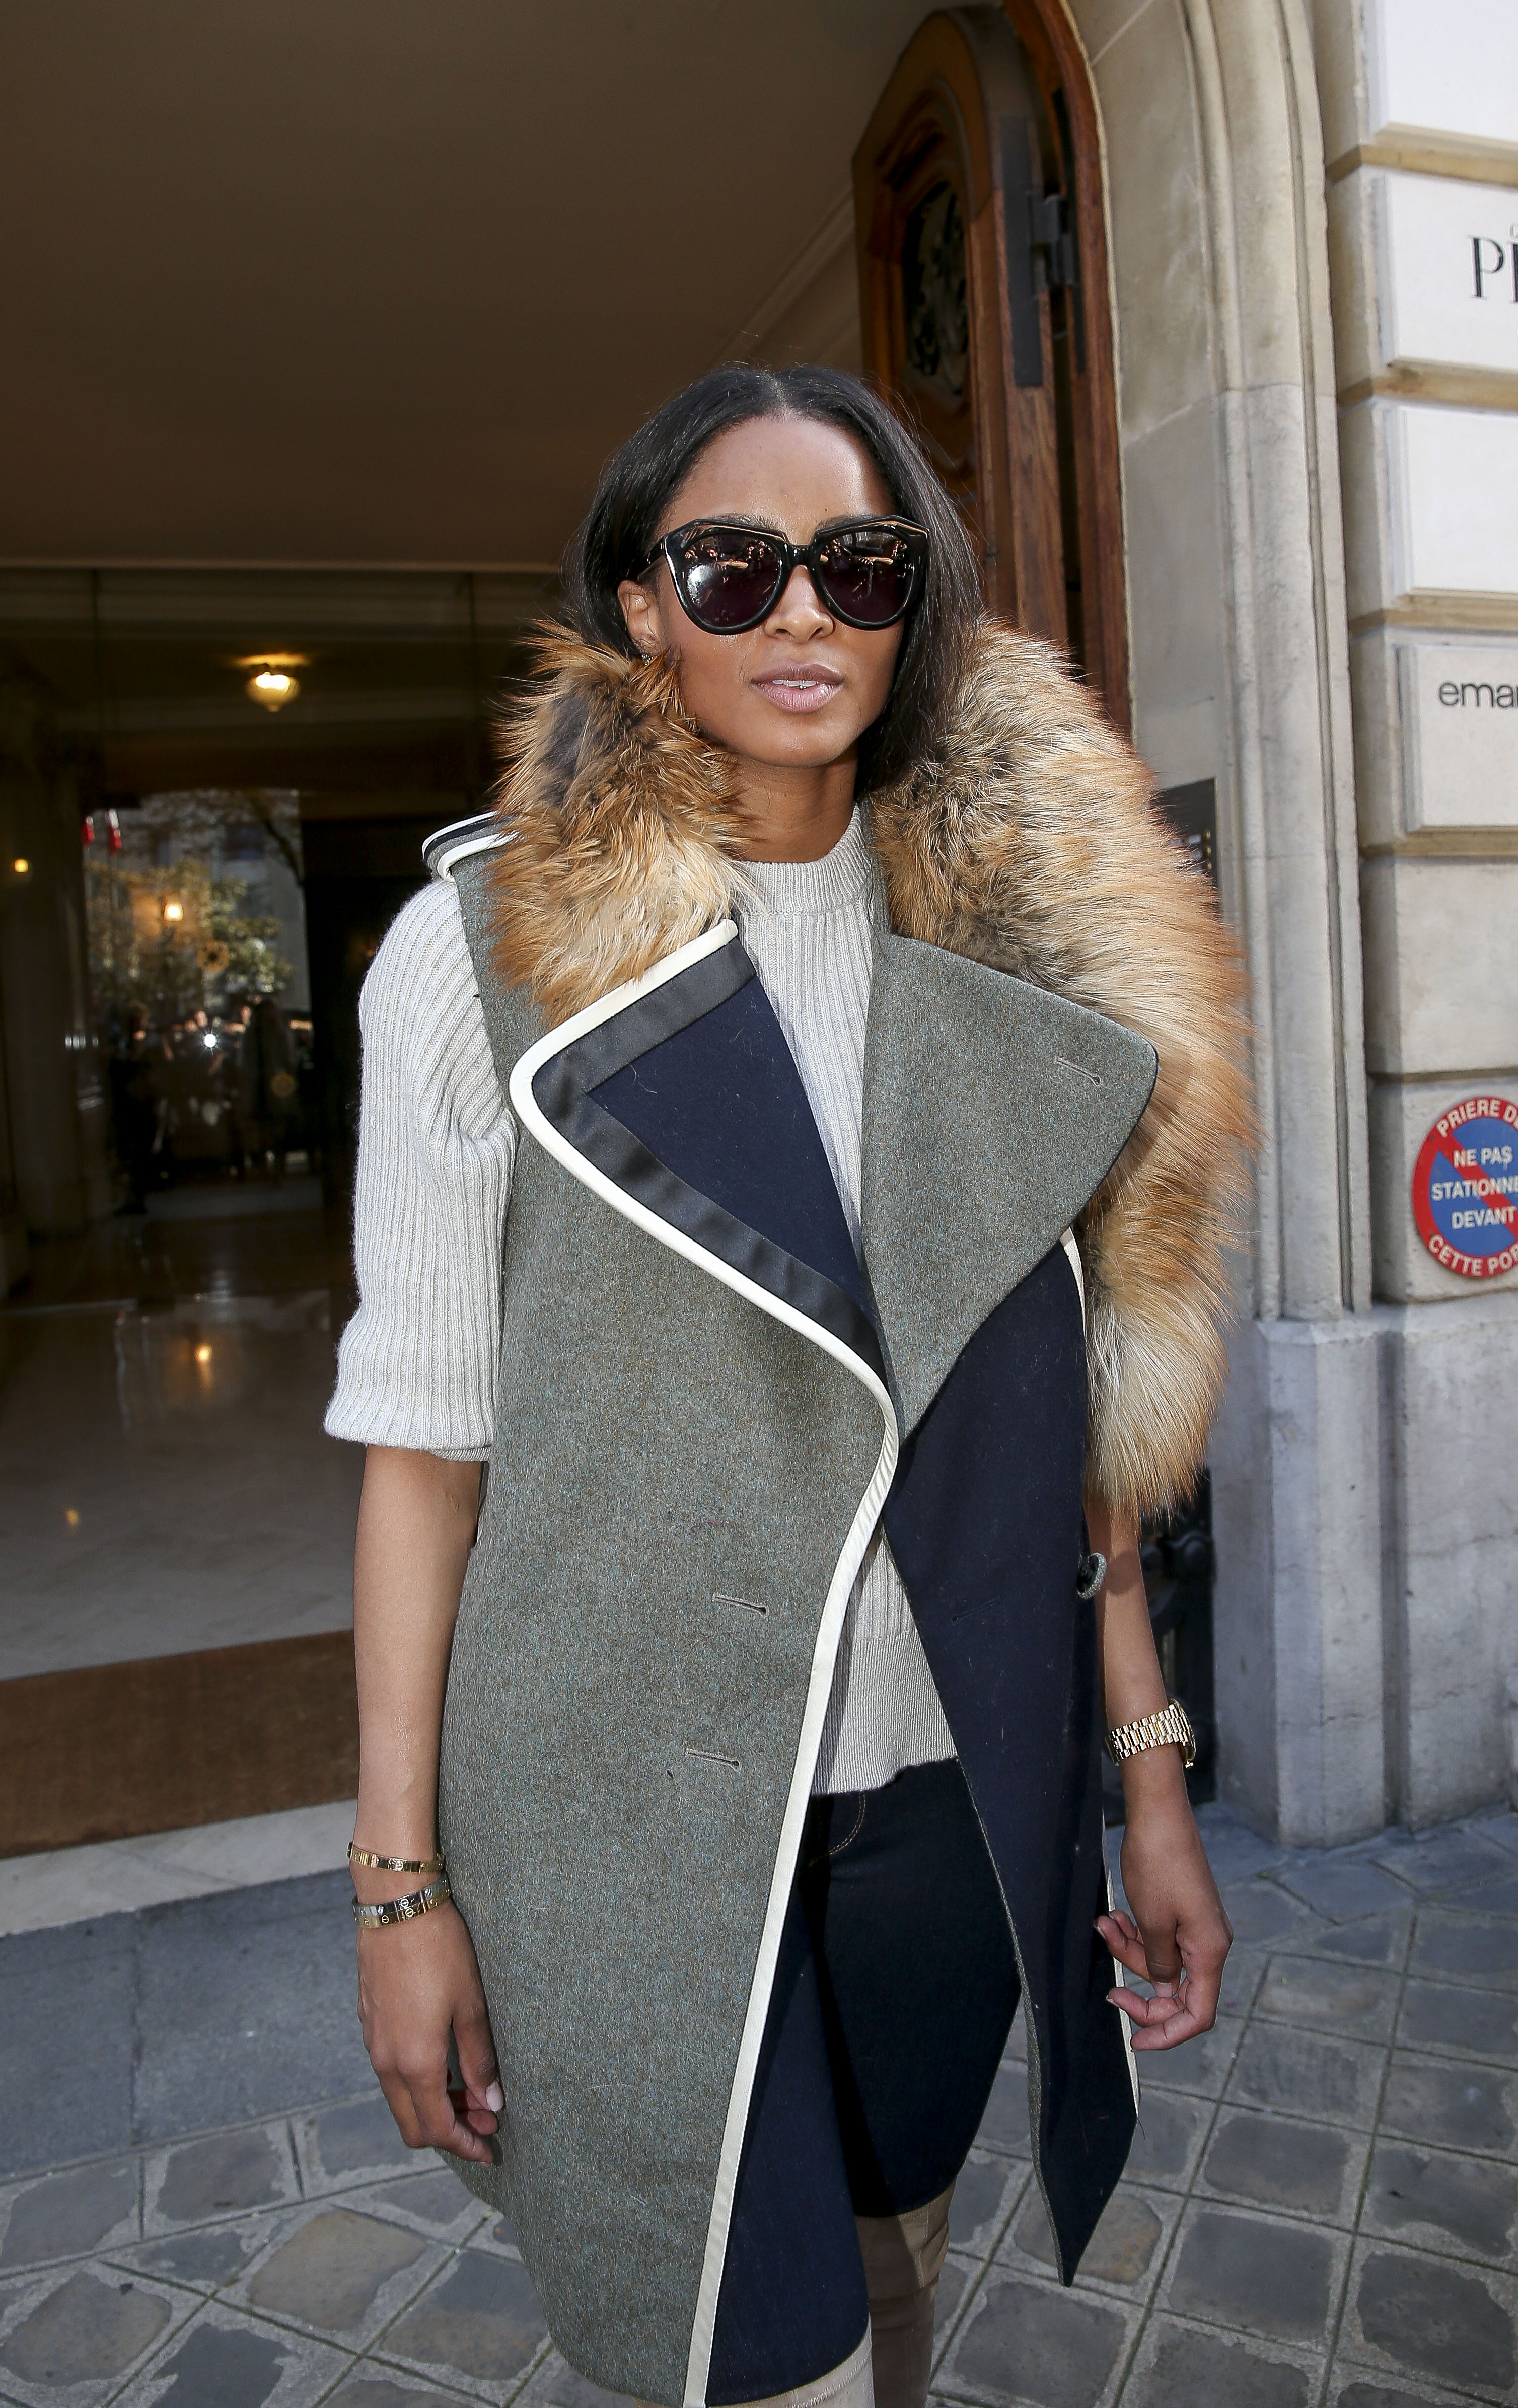 Celebrities seen at Givenchy's office in Paris